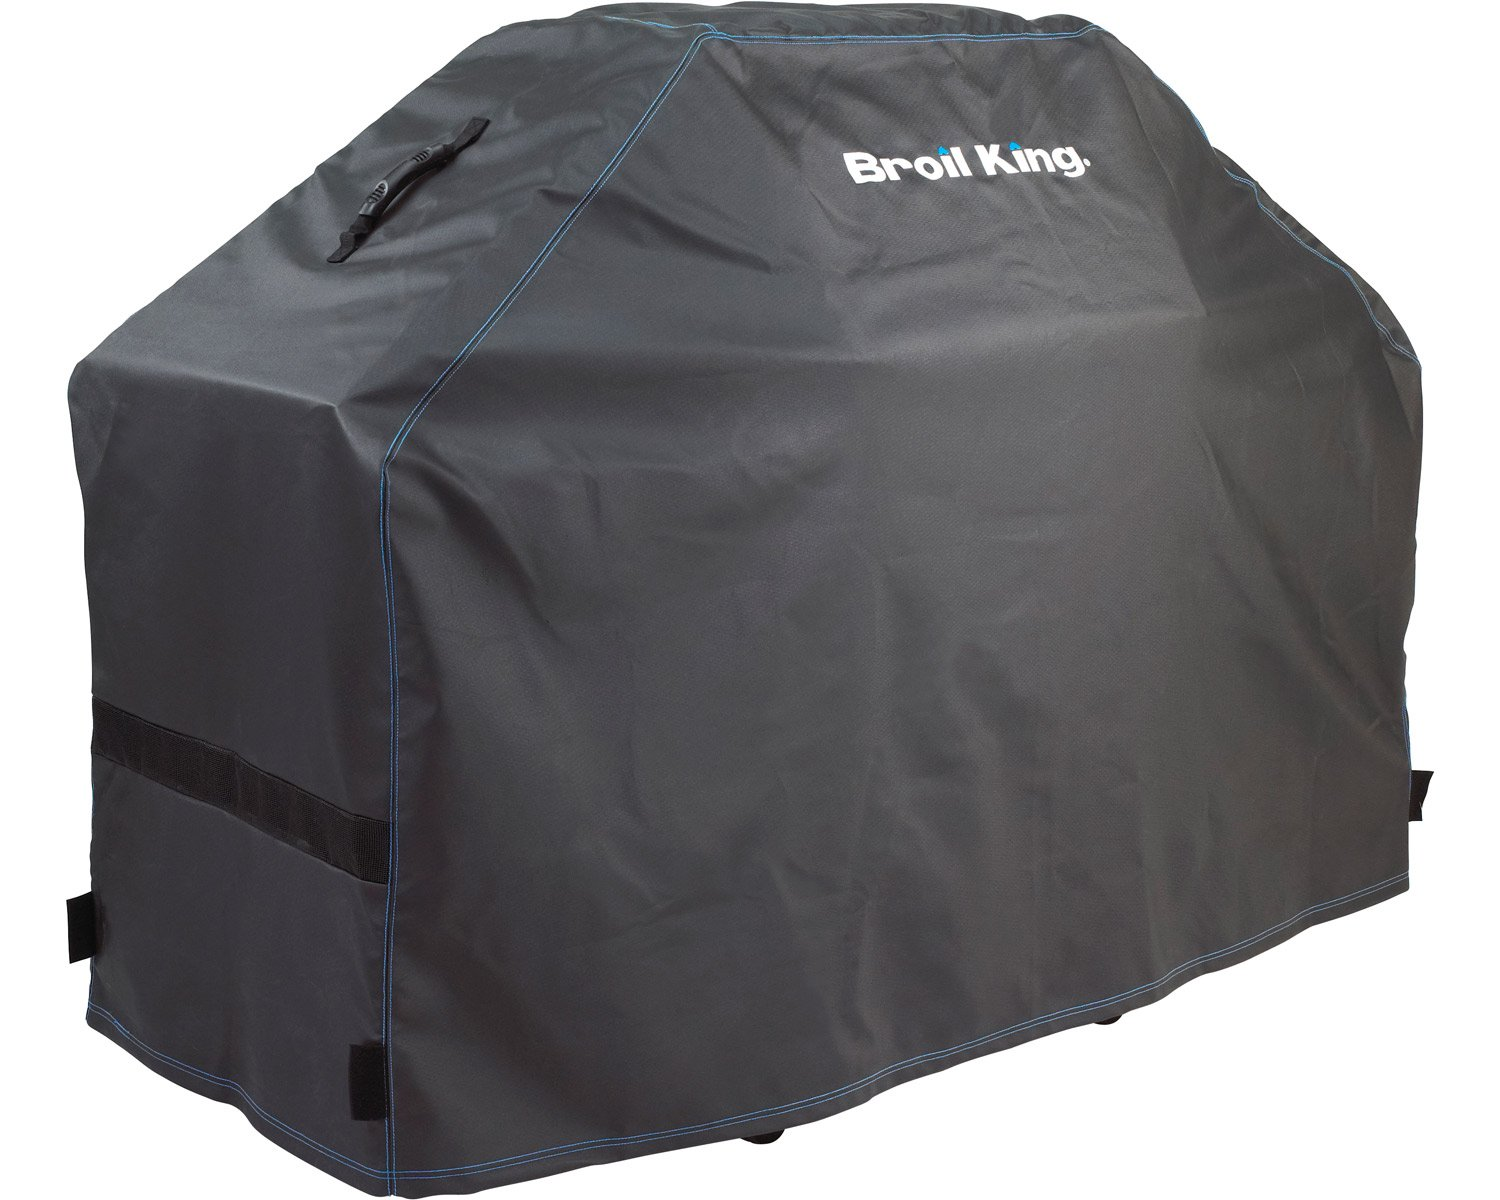 BroilKing 67487 Select Grill Cover, 58'' by Broil King